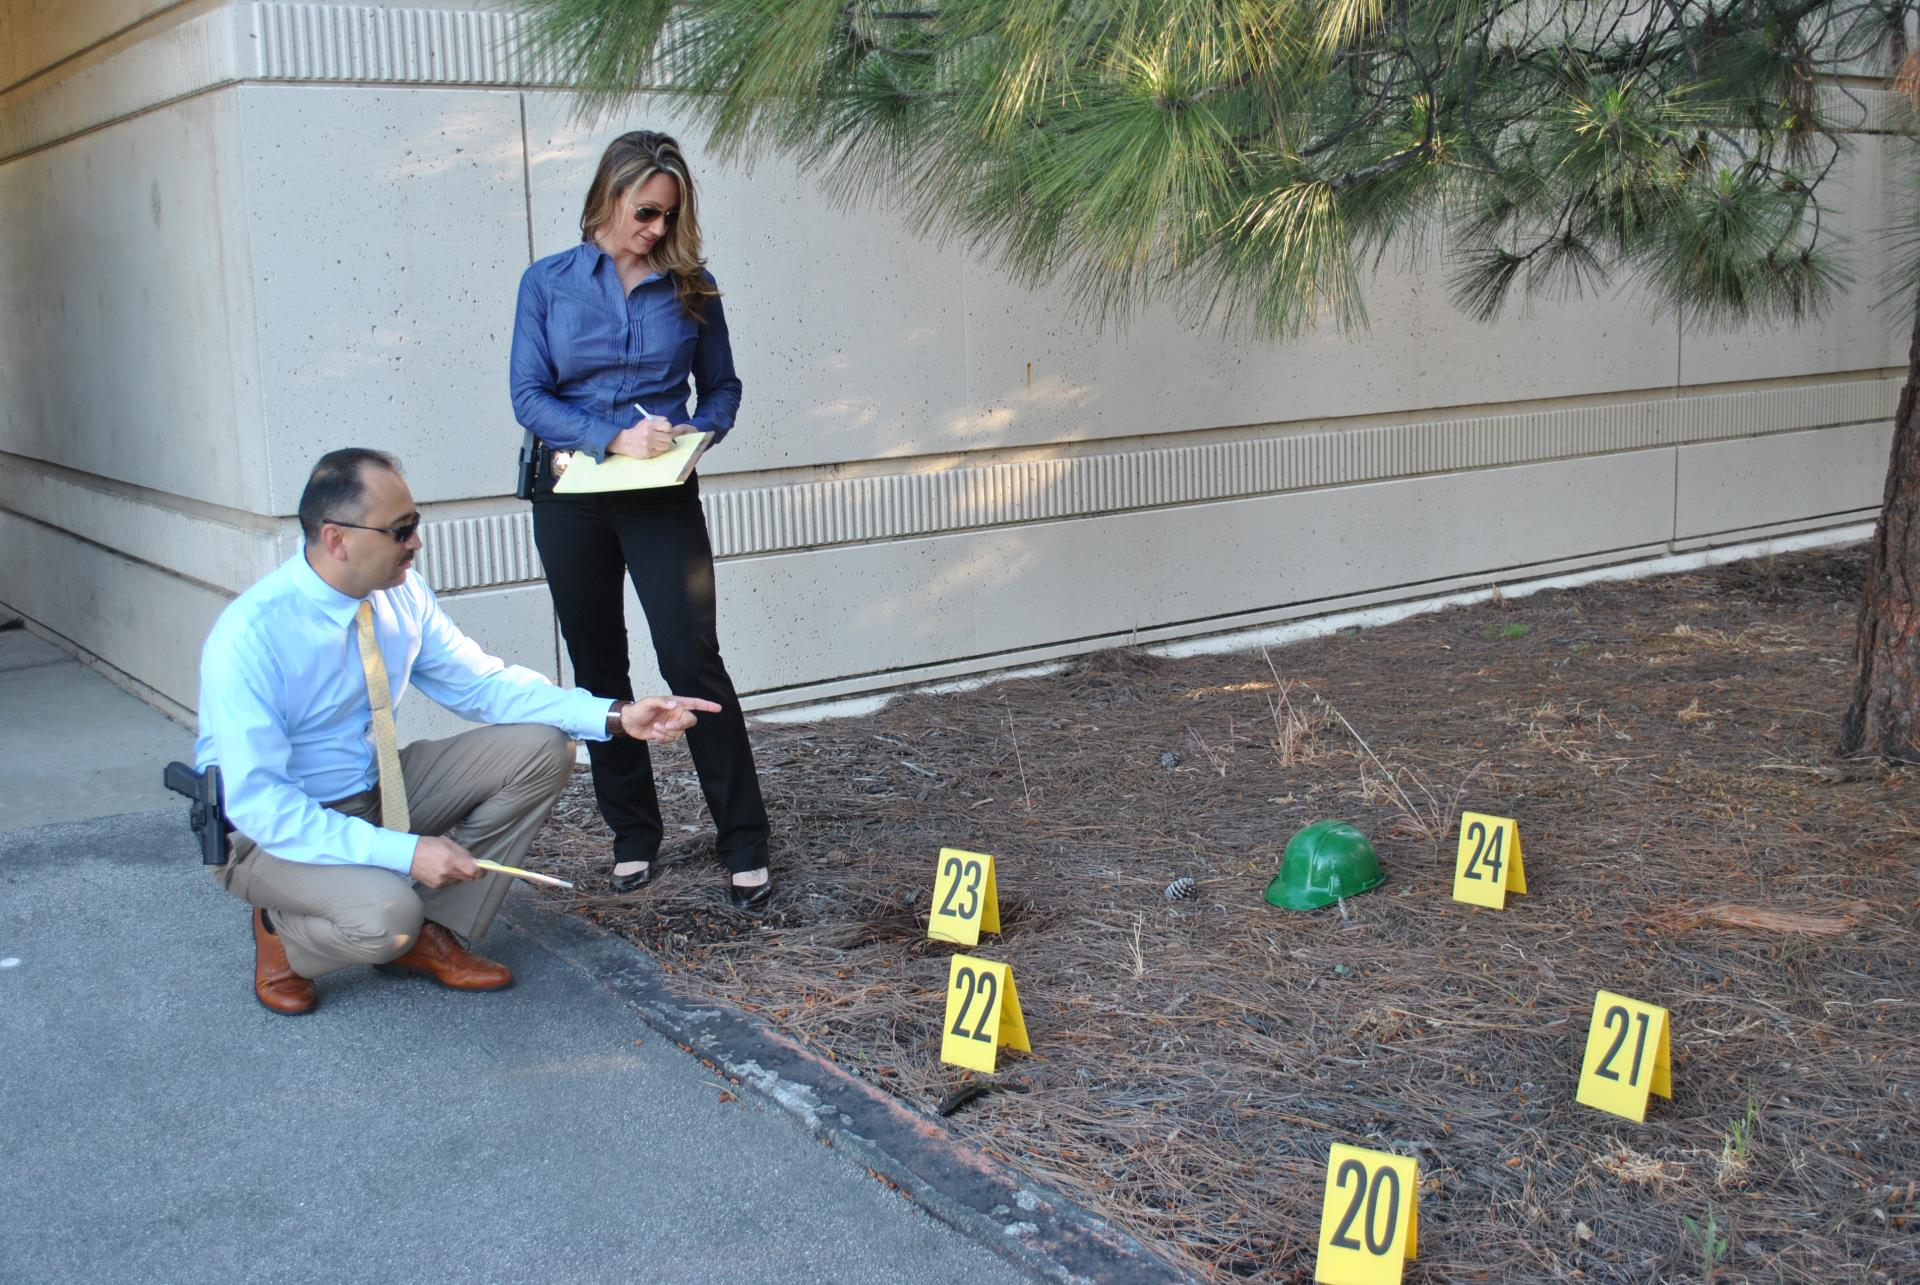 Crime Scene with evidence markers